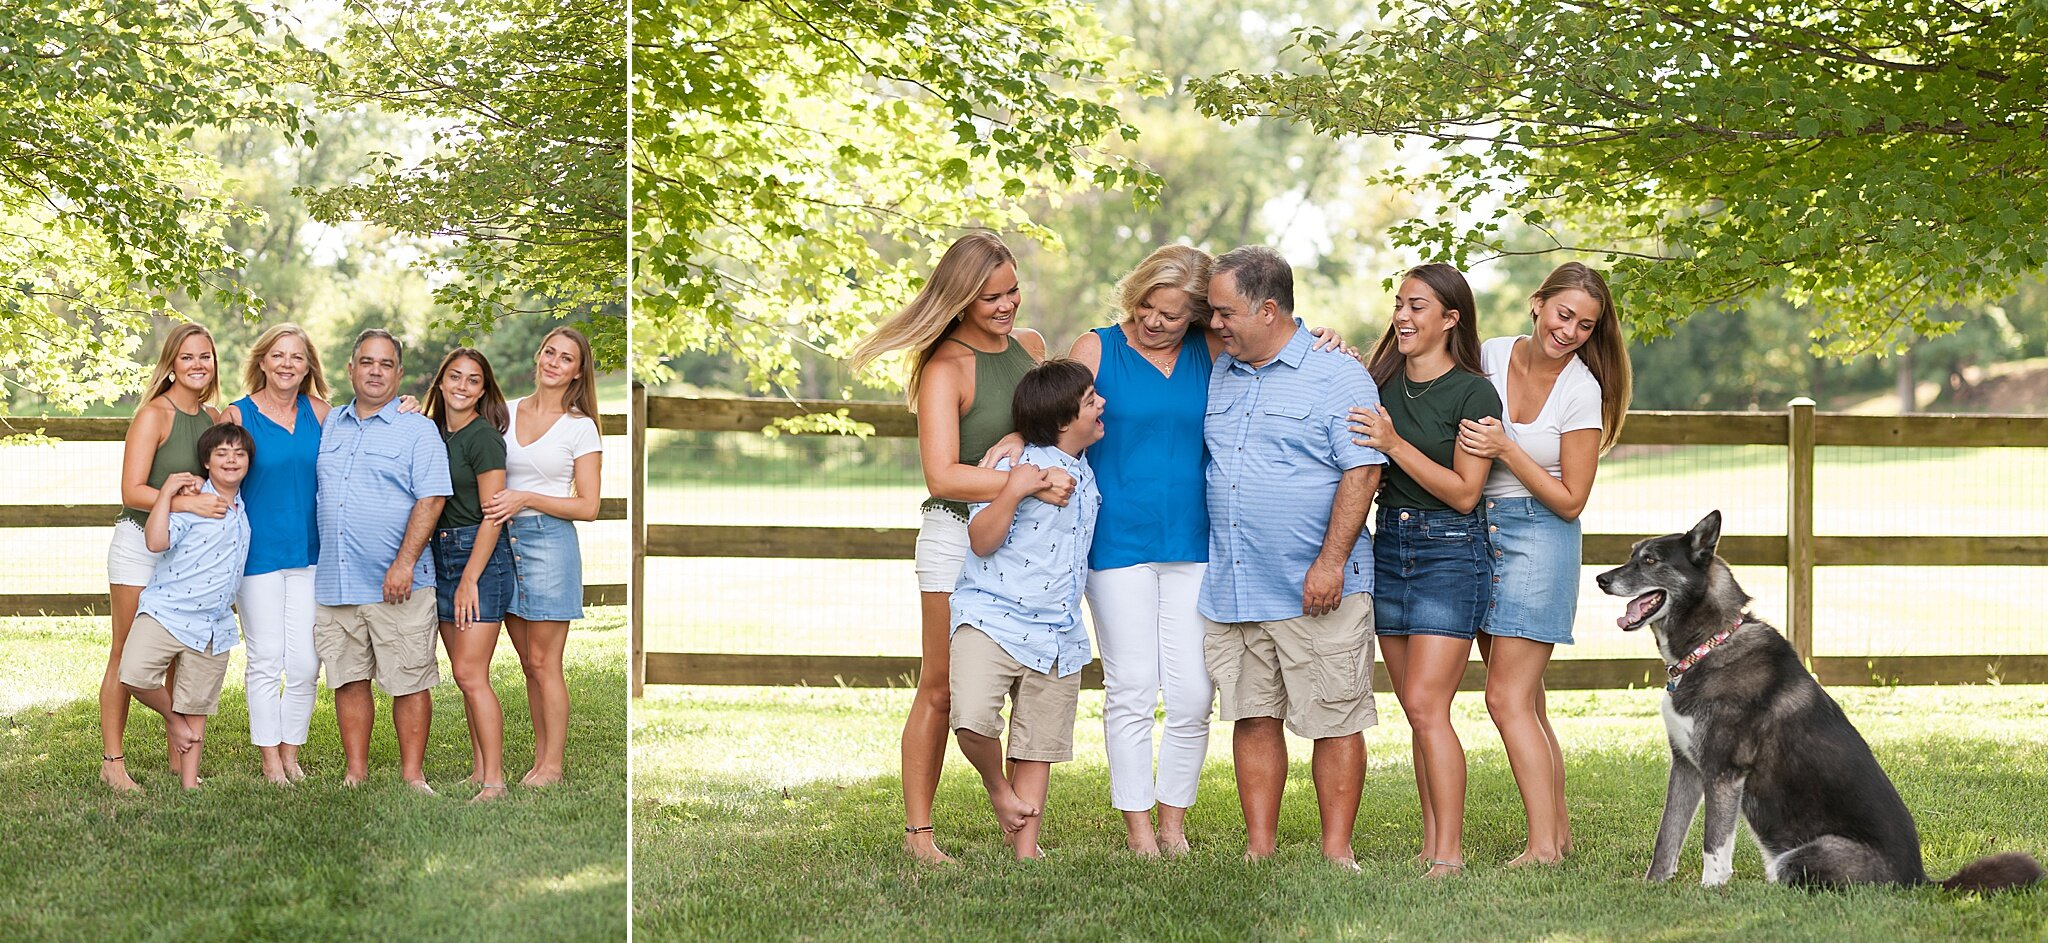 Wendy Zook Photography | Frederick MD family photographer, MD family photographer, Frederick family photographer, Maryland family photographer, Celebrate the Special Photo Sessions, Down Syndrome awareness, Frederick MD Down Syndrome Awareness photographer